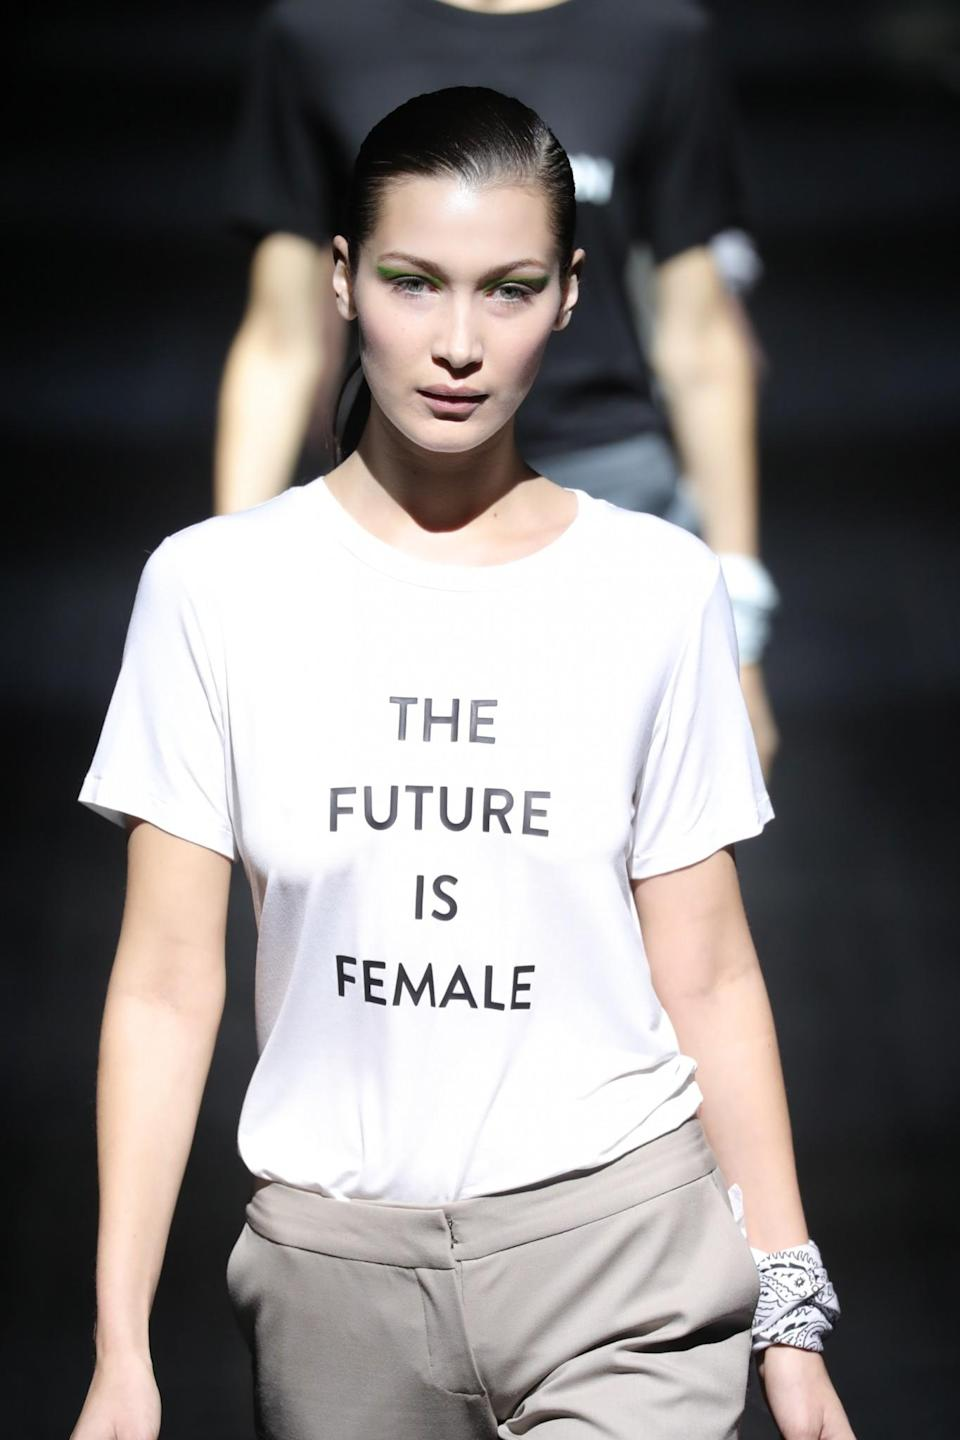 <p>Bella Hadid walks in the Prabal Gurung show in New York, wearing one of a handful of feminism- and equality-stamped T-shirts that the designer featured. (Photo: Getty Images) </p>